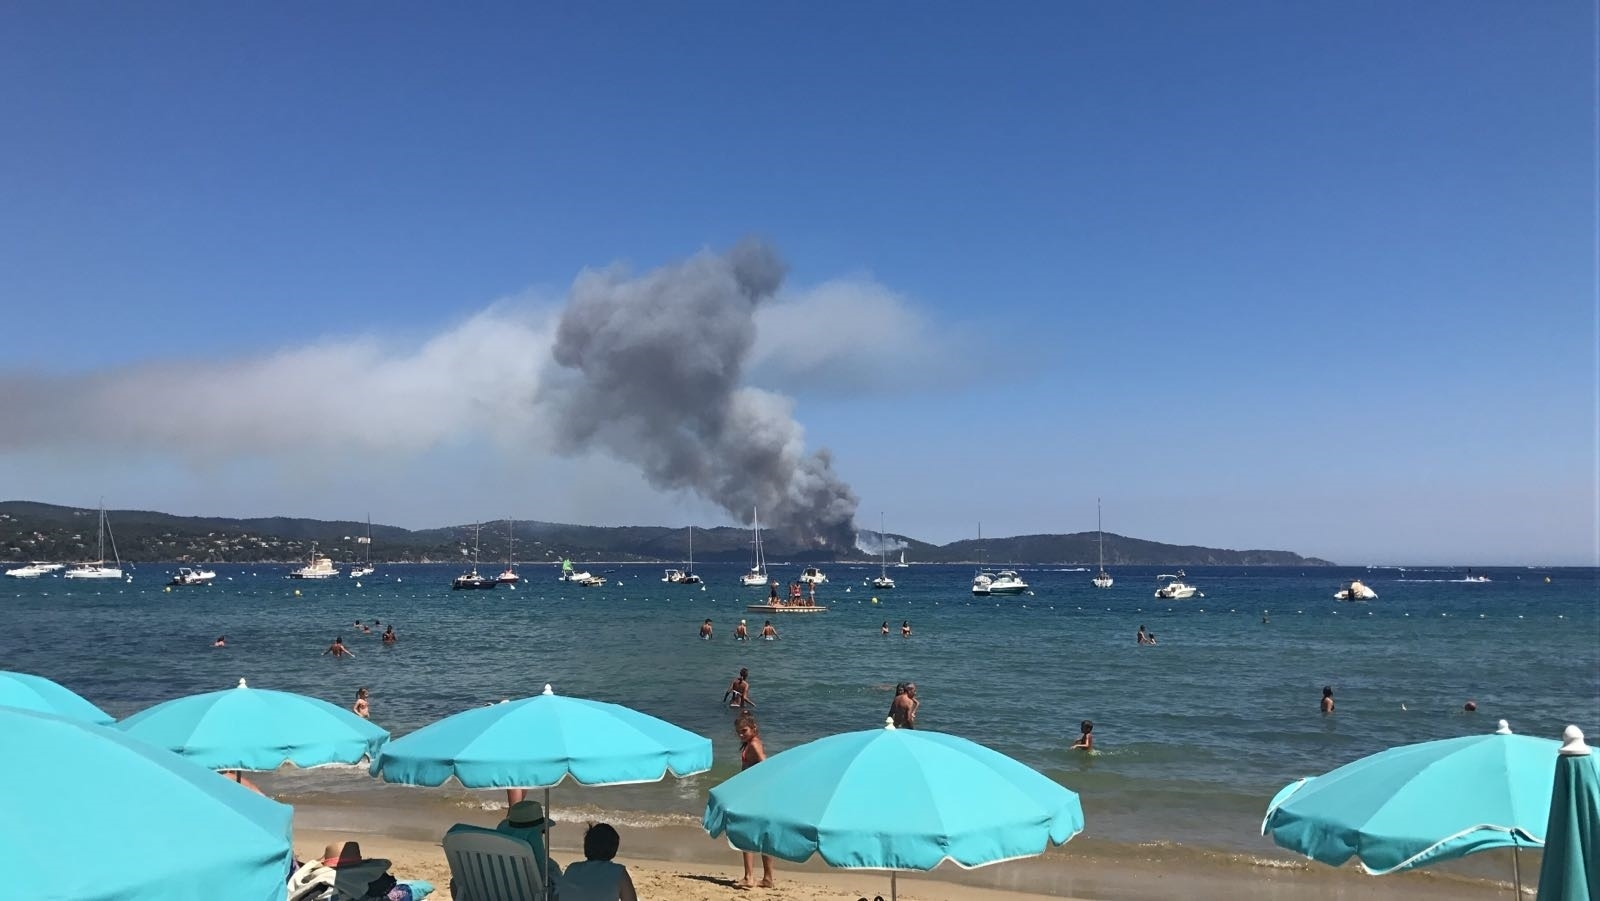 Flames seen from beach in France